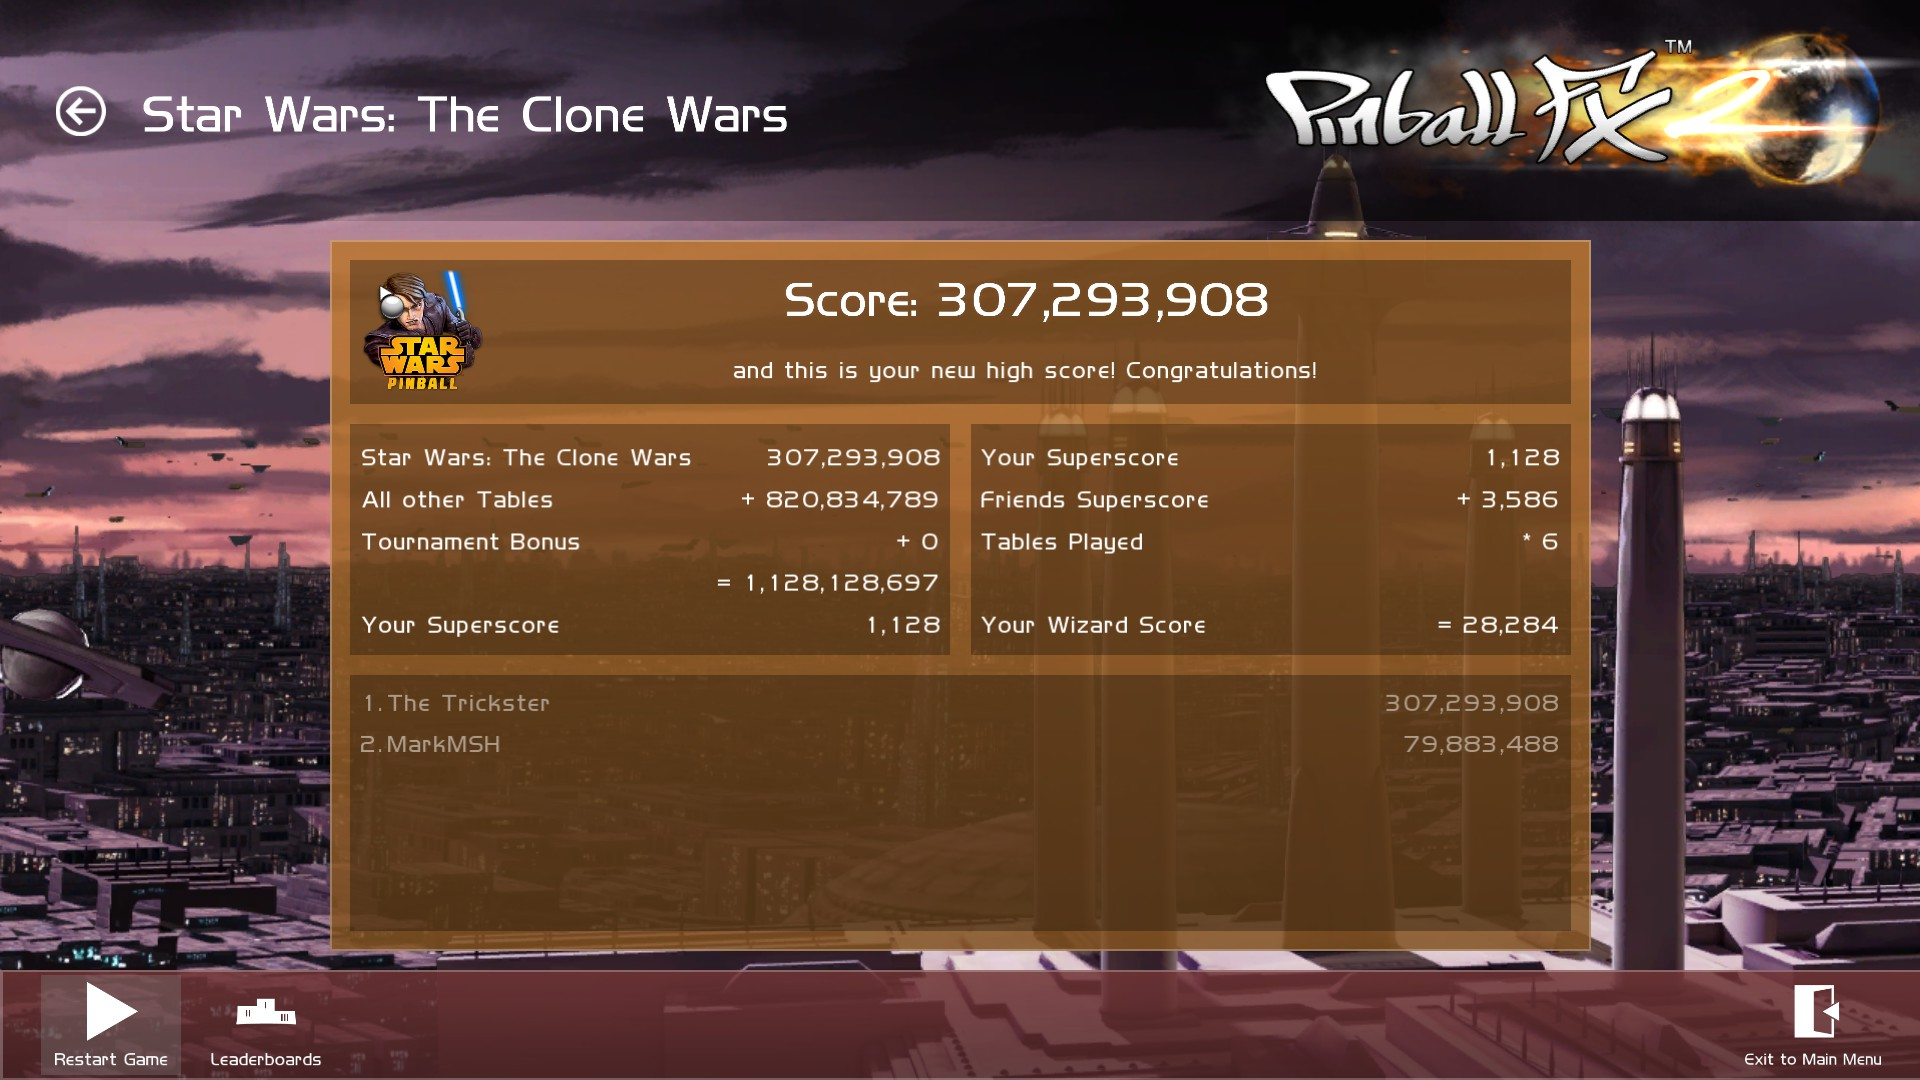 TheTrickster: Pinball FX 2: Star Wars: The Clone Wars (PC) 307,293,908 points on 2015-12-08 07:35:28